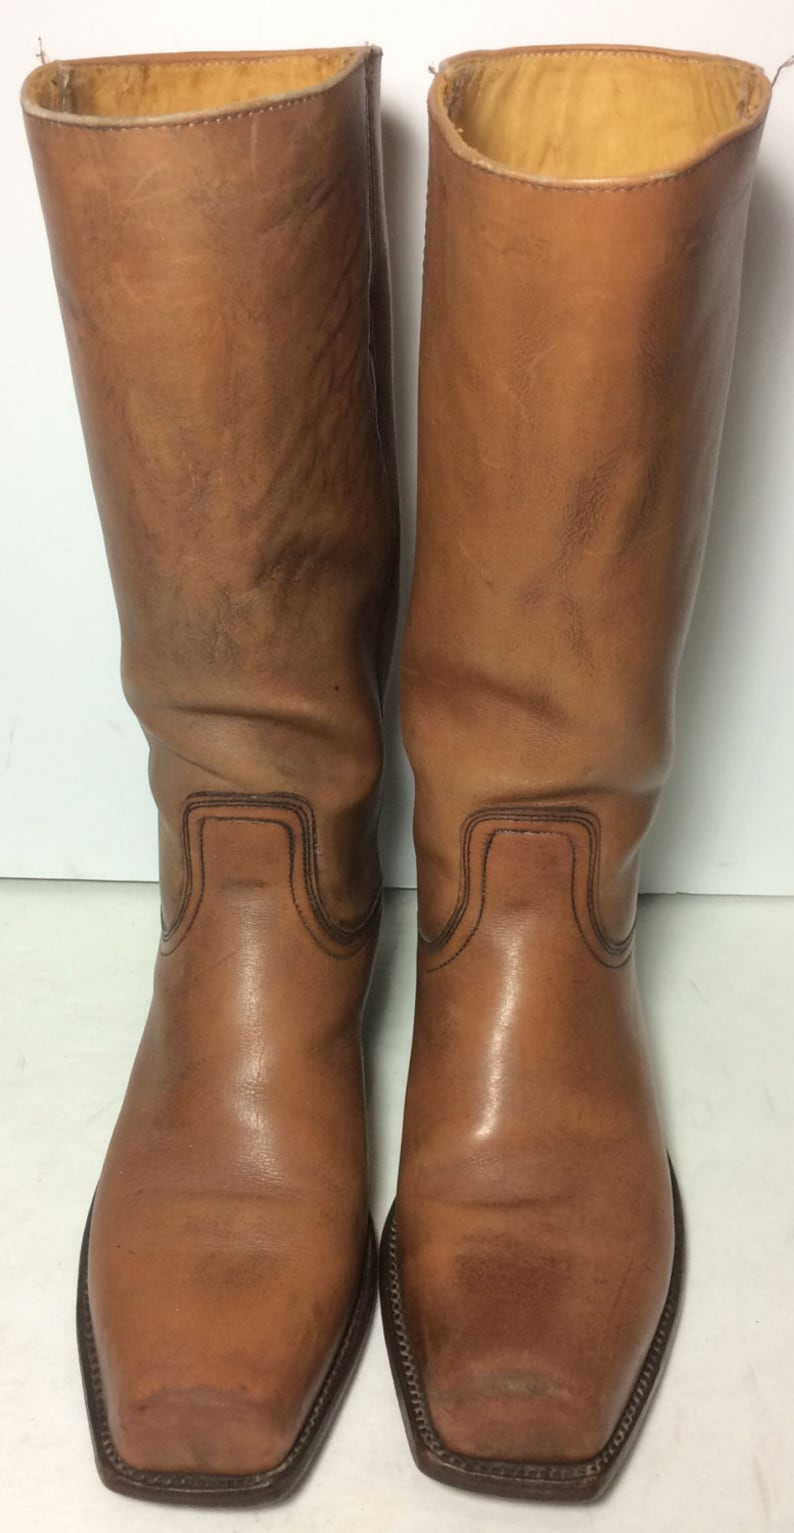 6c0aed34464e 8.5 us 41.5 euro 8 uk Frye 2278 Campus Brown Leather